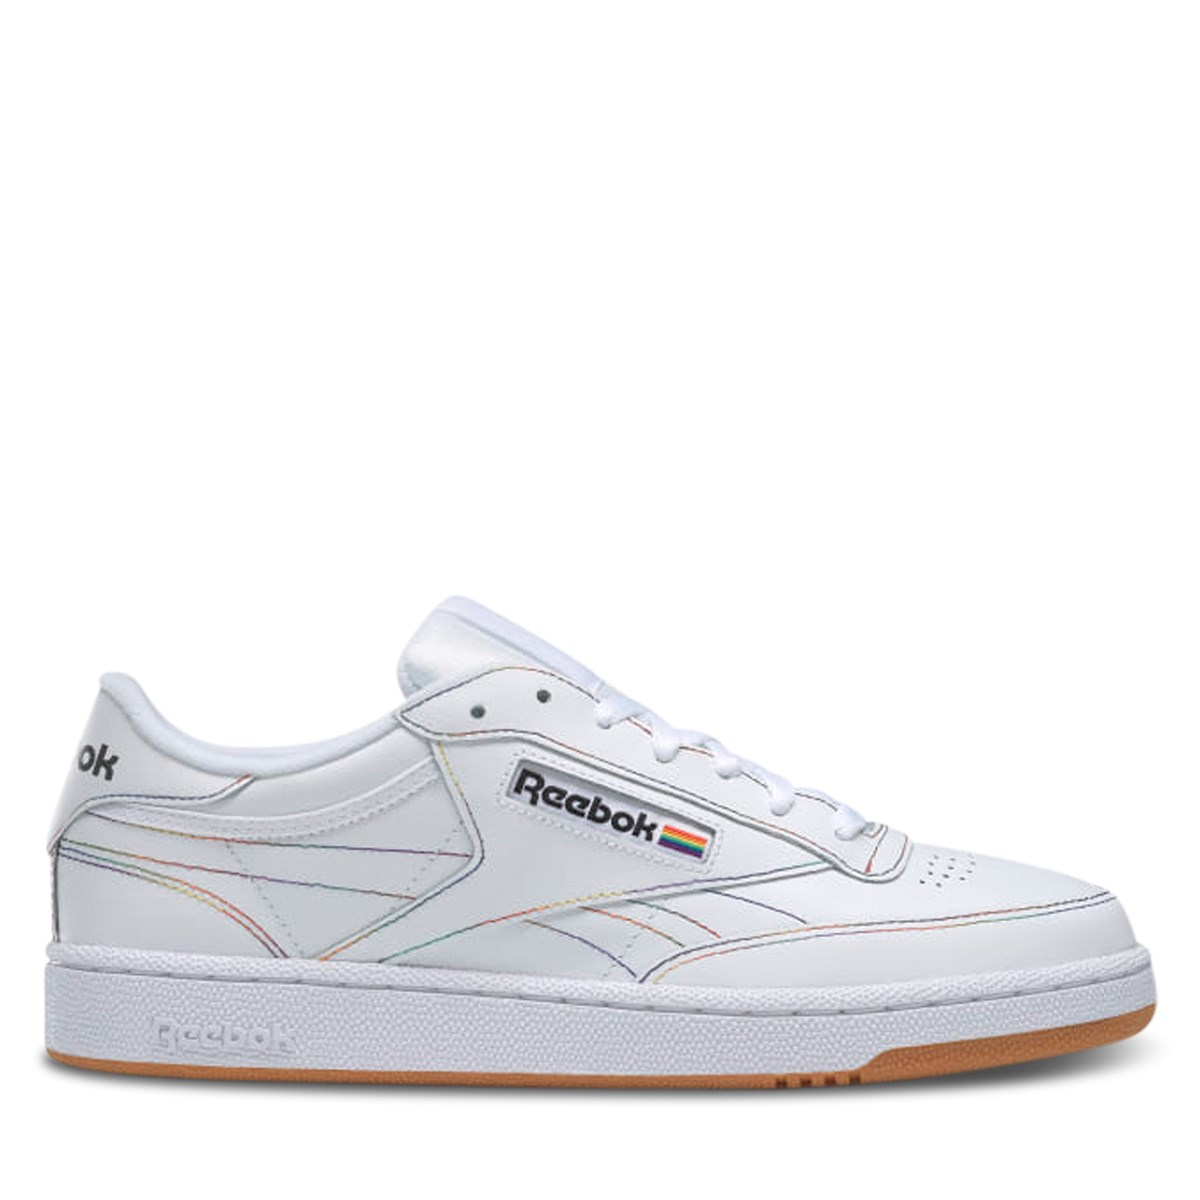 Club C 85 Pride Sneakers in White